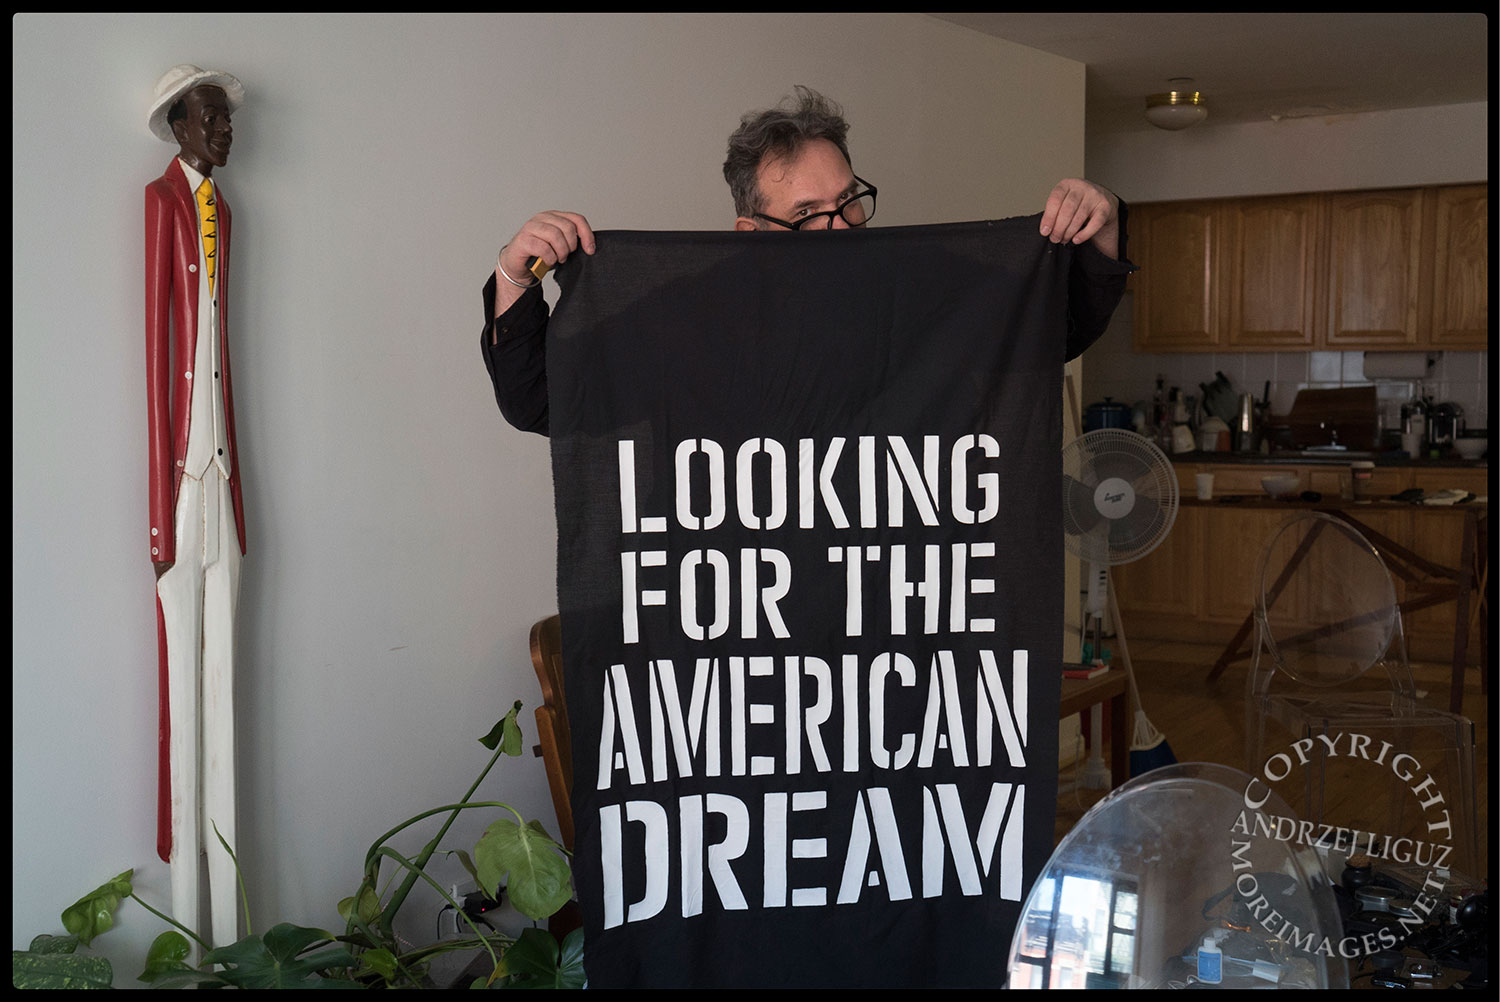 Still in NYC, looking for the American Dream